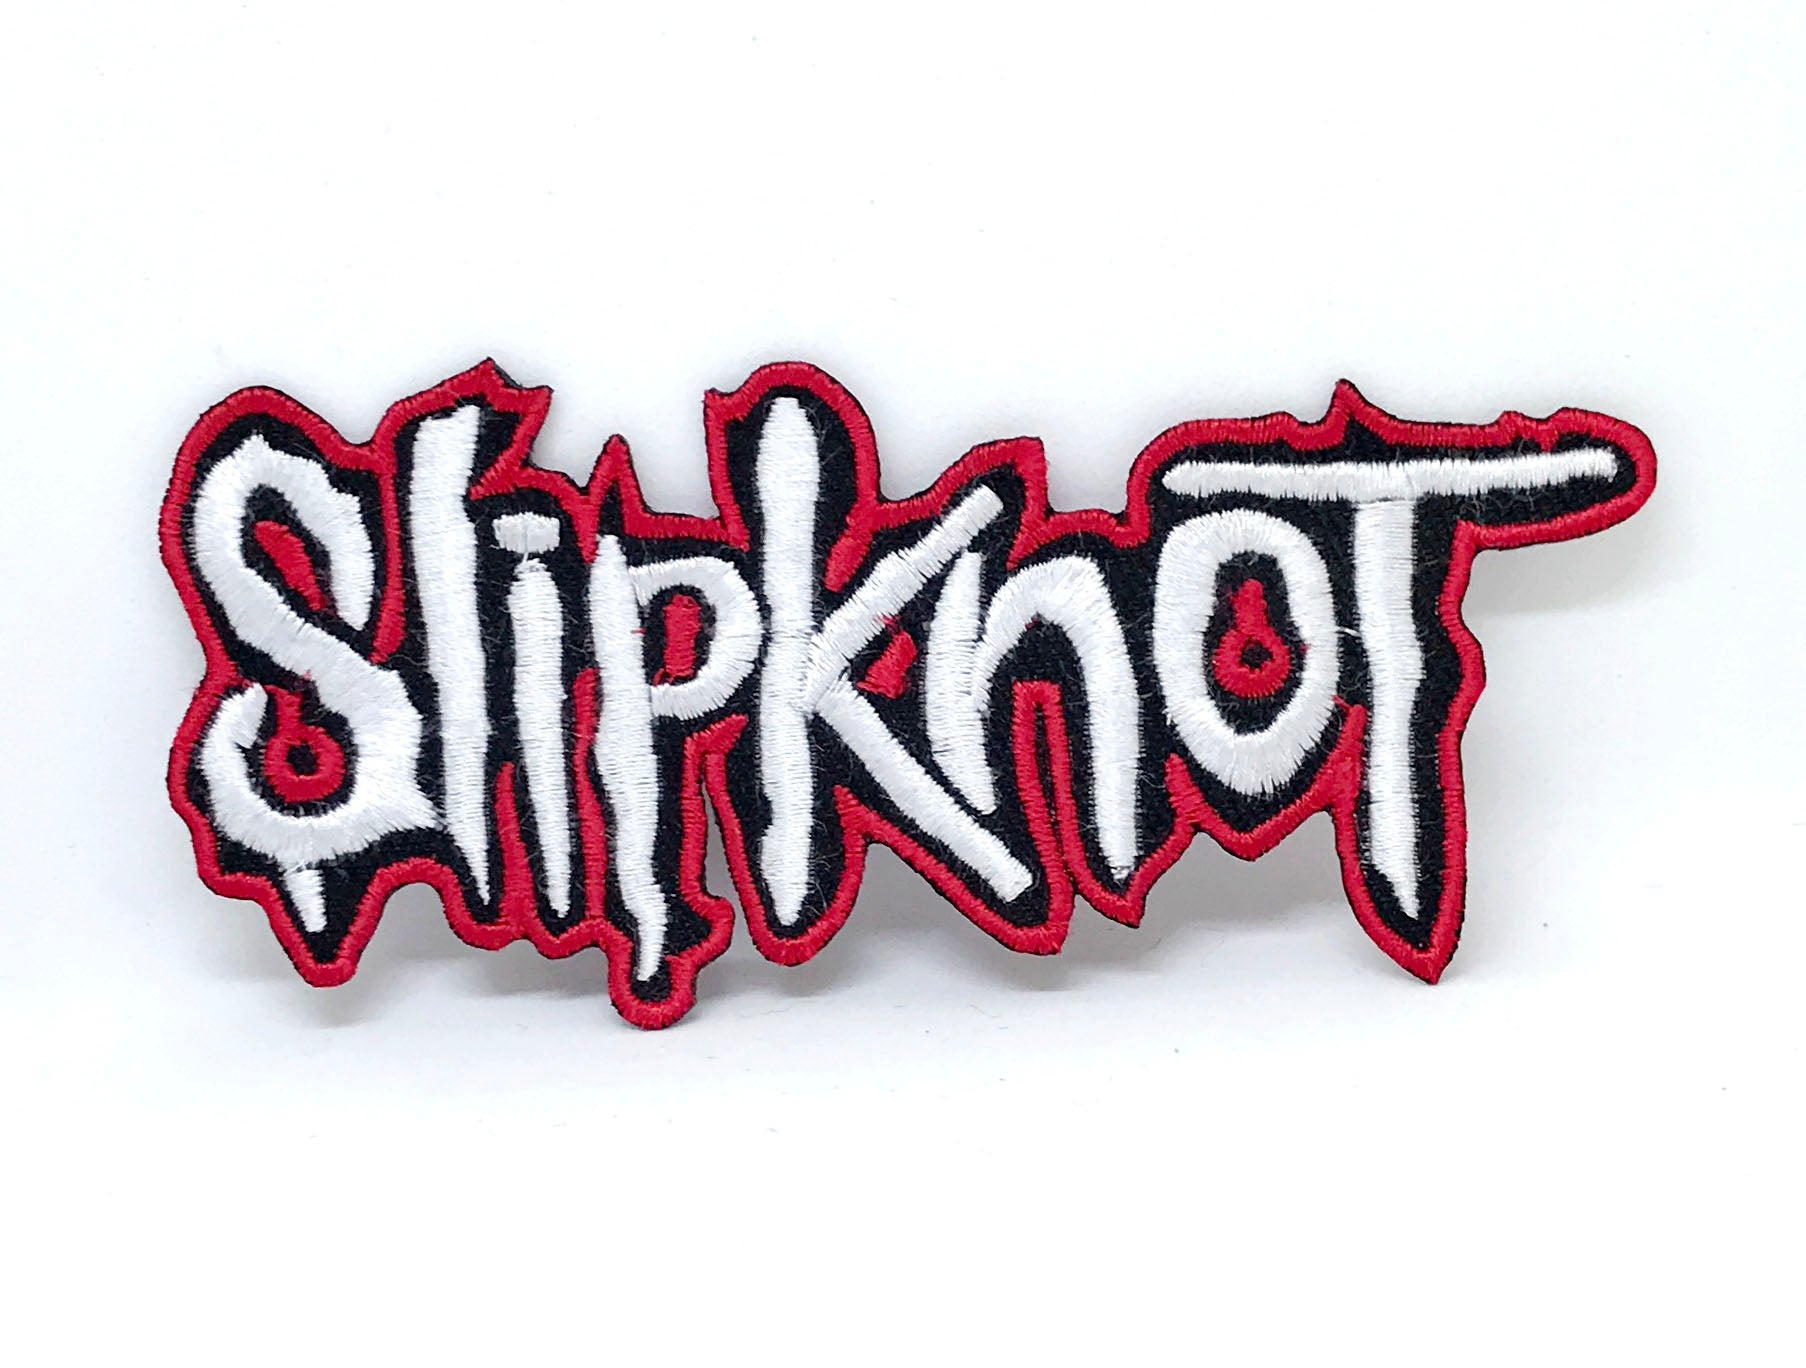 Slipknot Metal Music band logo collection Iron on Sew on Embroidered Patches